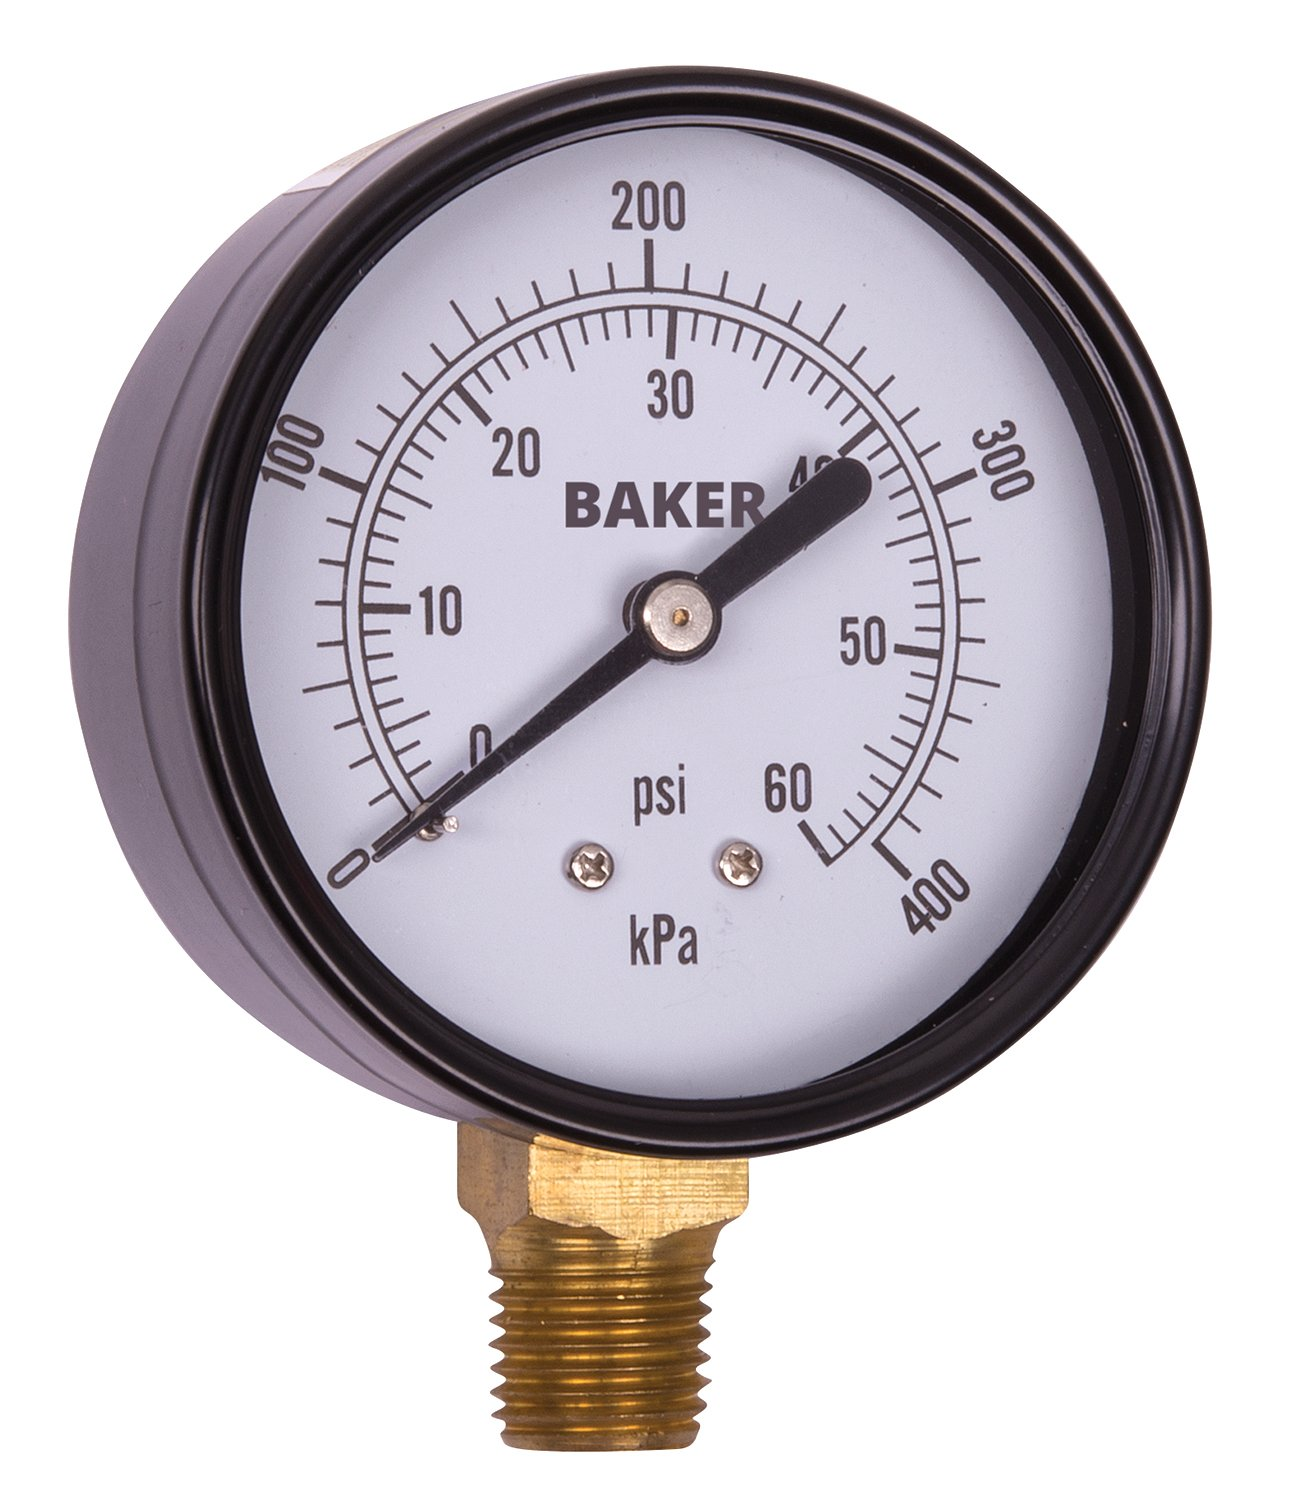 Baker Instruments LVBNA Series Stainless Steel Dual Scale Pressure Gauge 0 to 60 psi kPa 2.5 Dial 3 2 3% Accuracy 1 4 NPT Bottom Mount